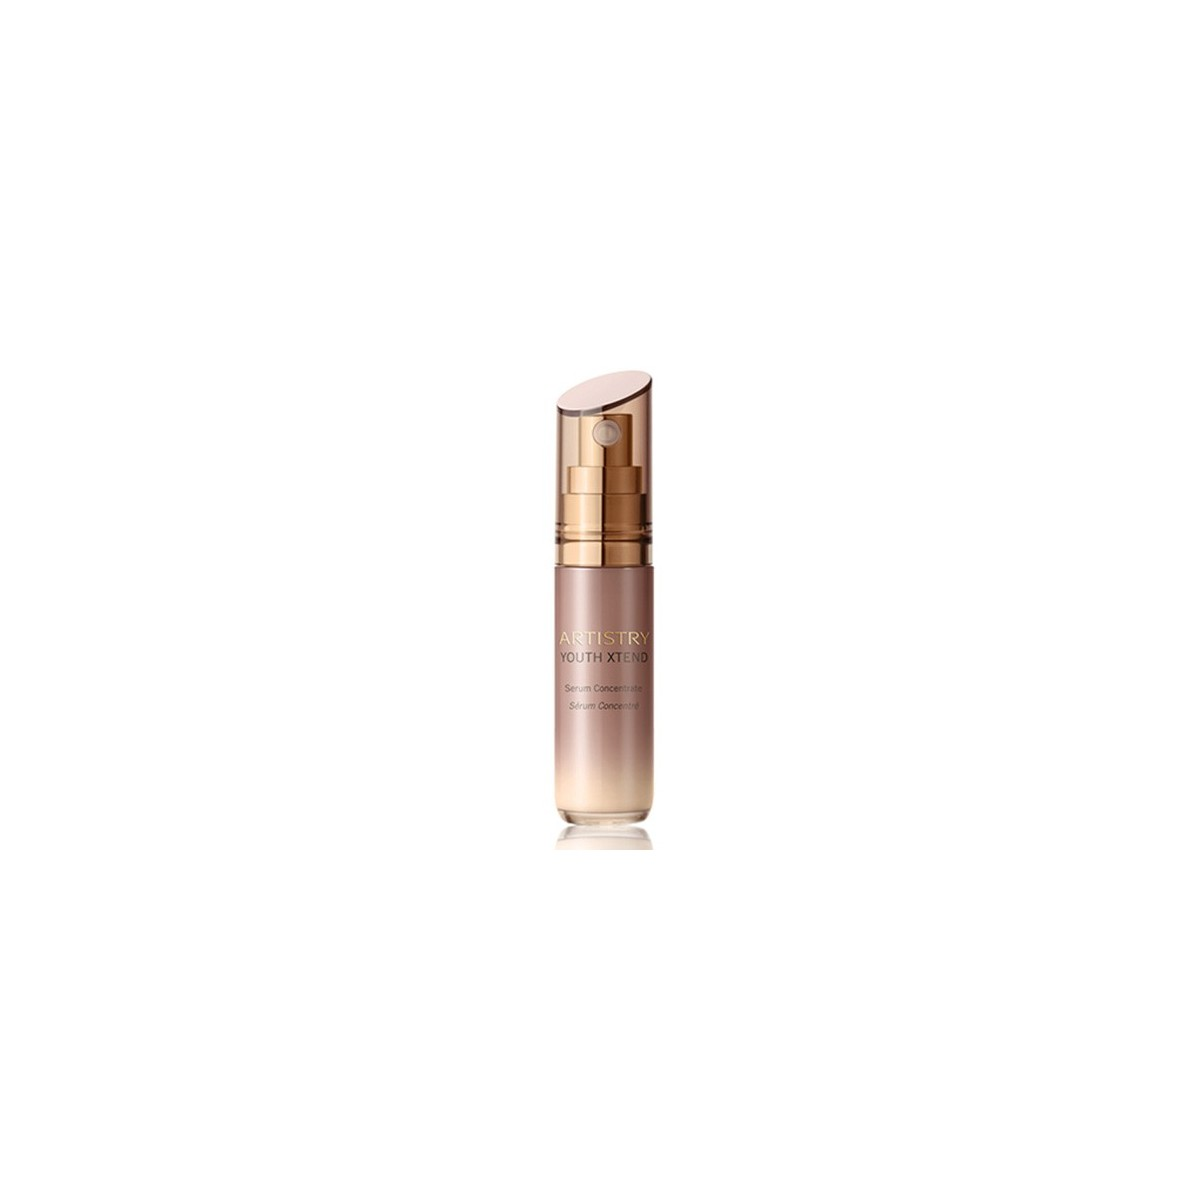 Amway Artistry Youth Xtend Serum Concentrate